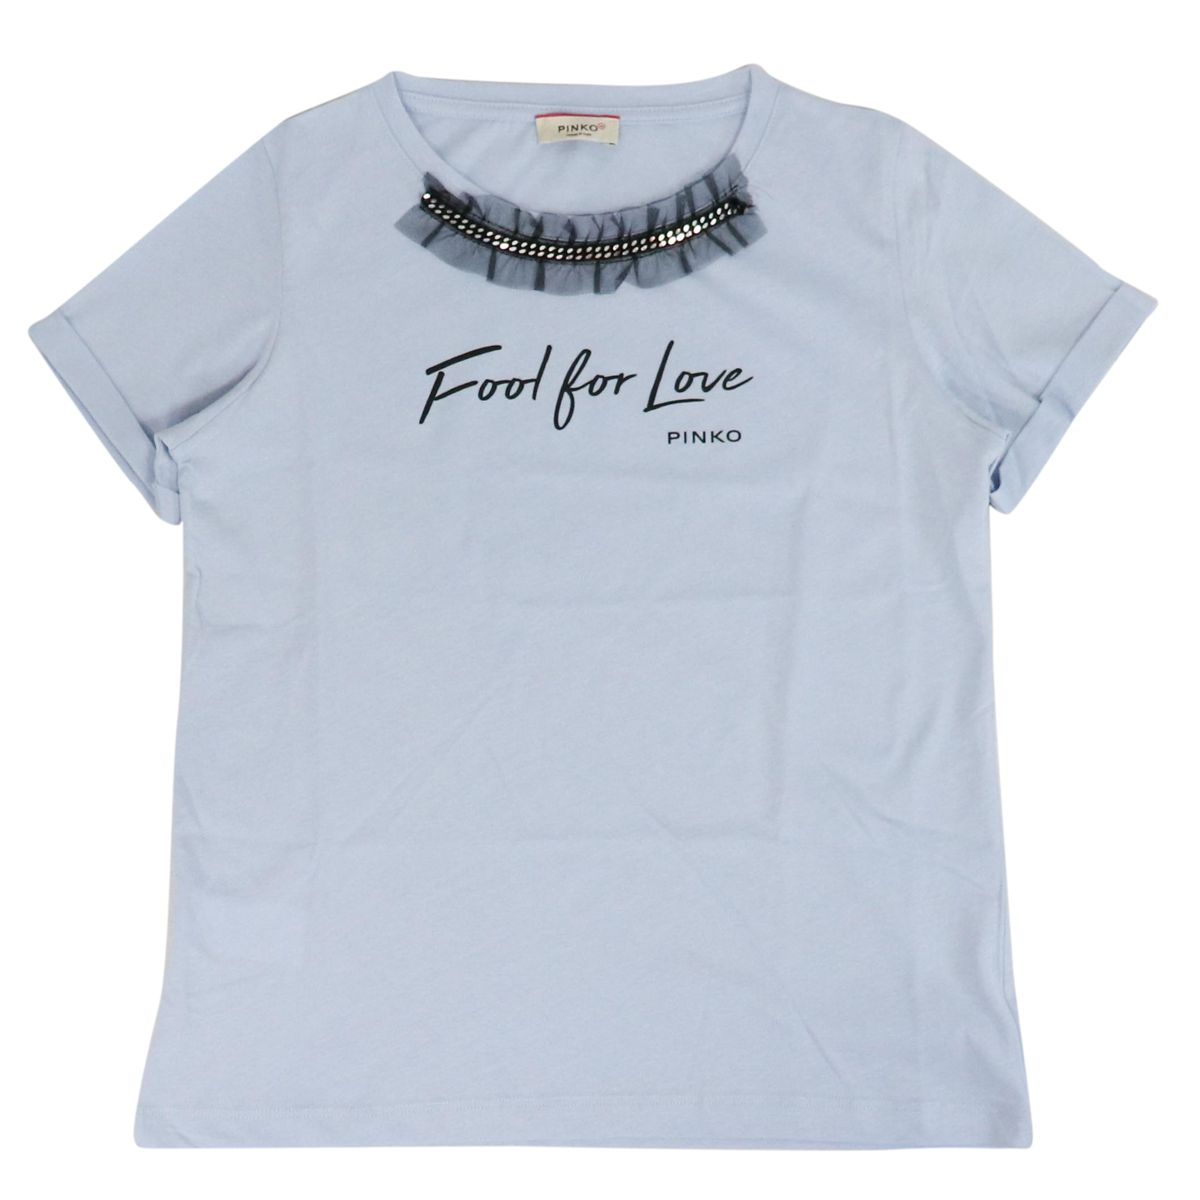 Short sleeve t-shirt with ruffles on the neck FERROVIERE Light blue Pinko